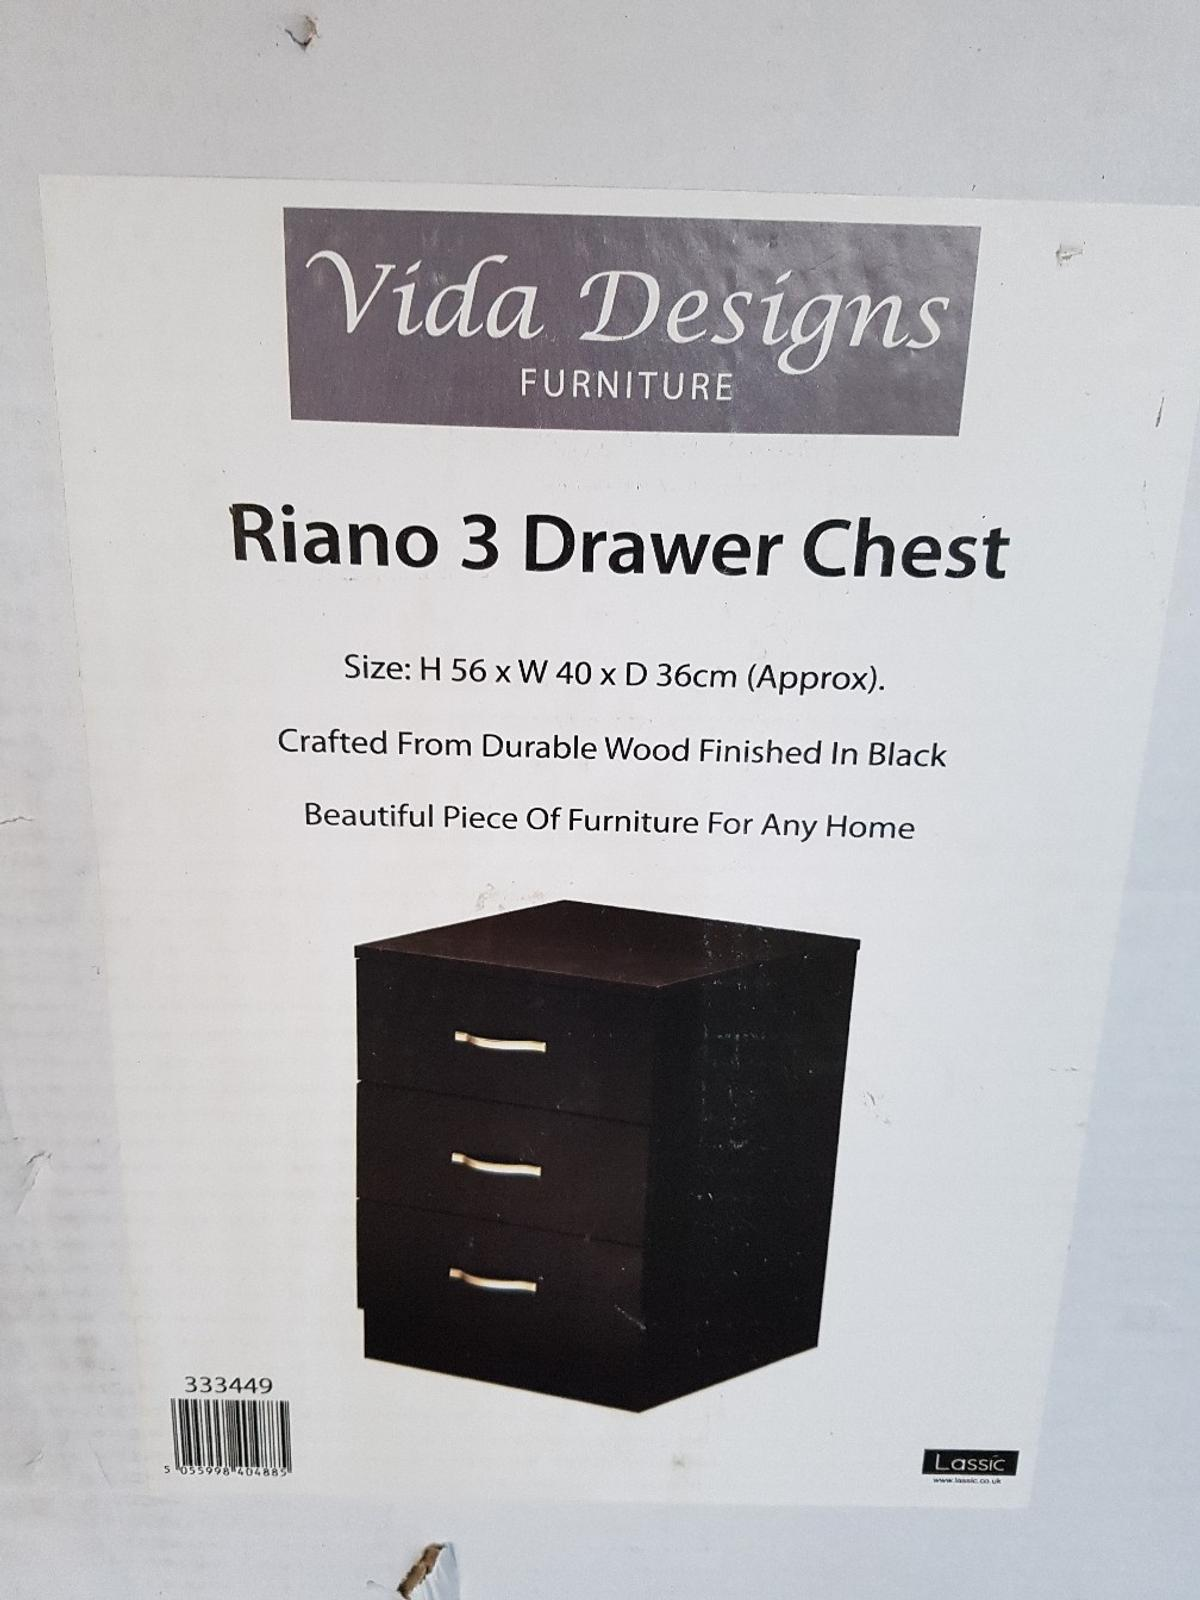 Home Discount Walnut Chest of Drawers 5 Drawer With Metal Handles /& Runners Unique Anti-Bowing Drawer Support Riano Bedroom Storage Furniture